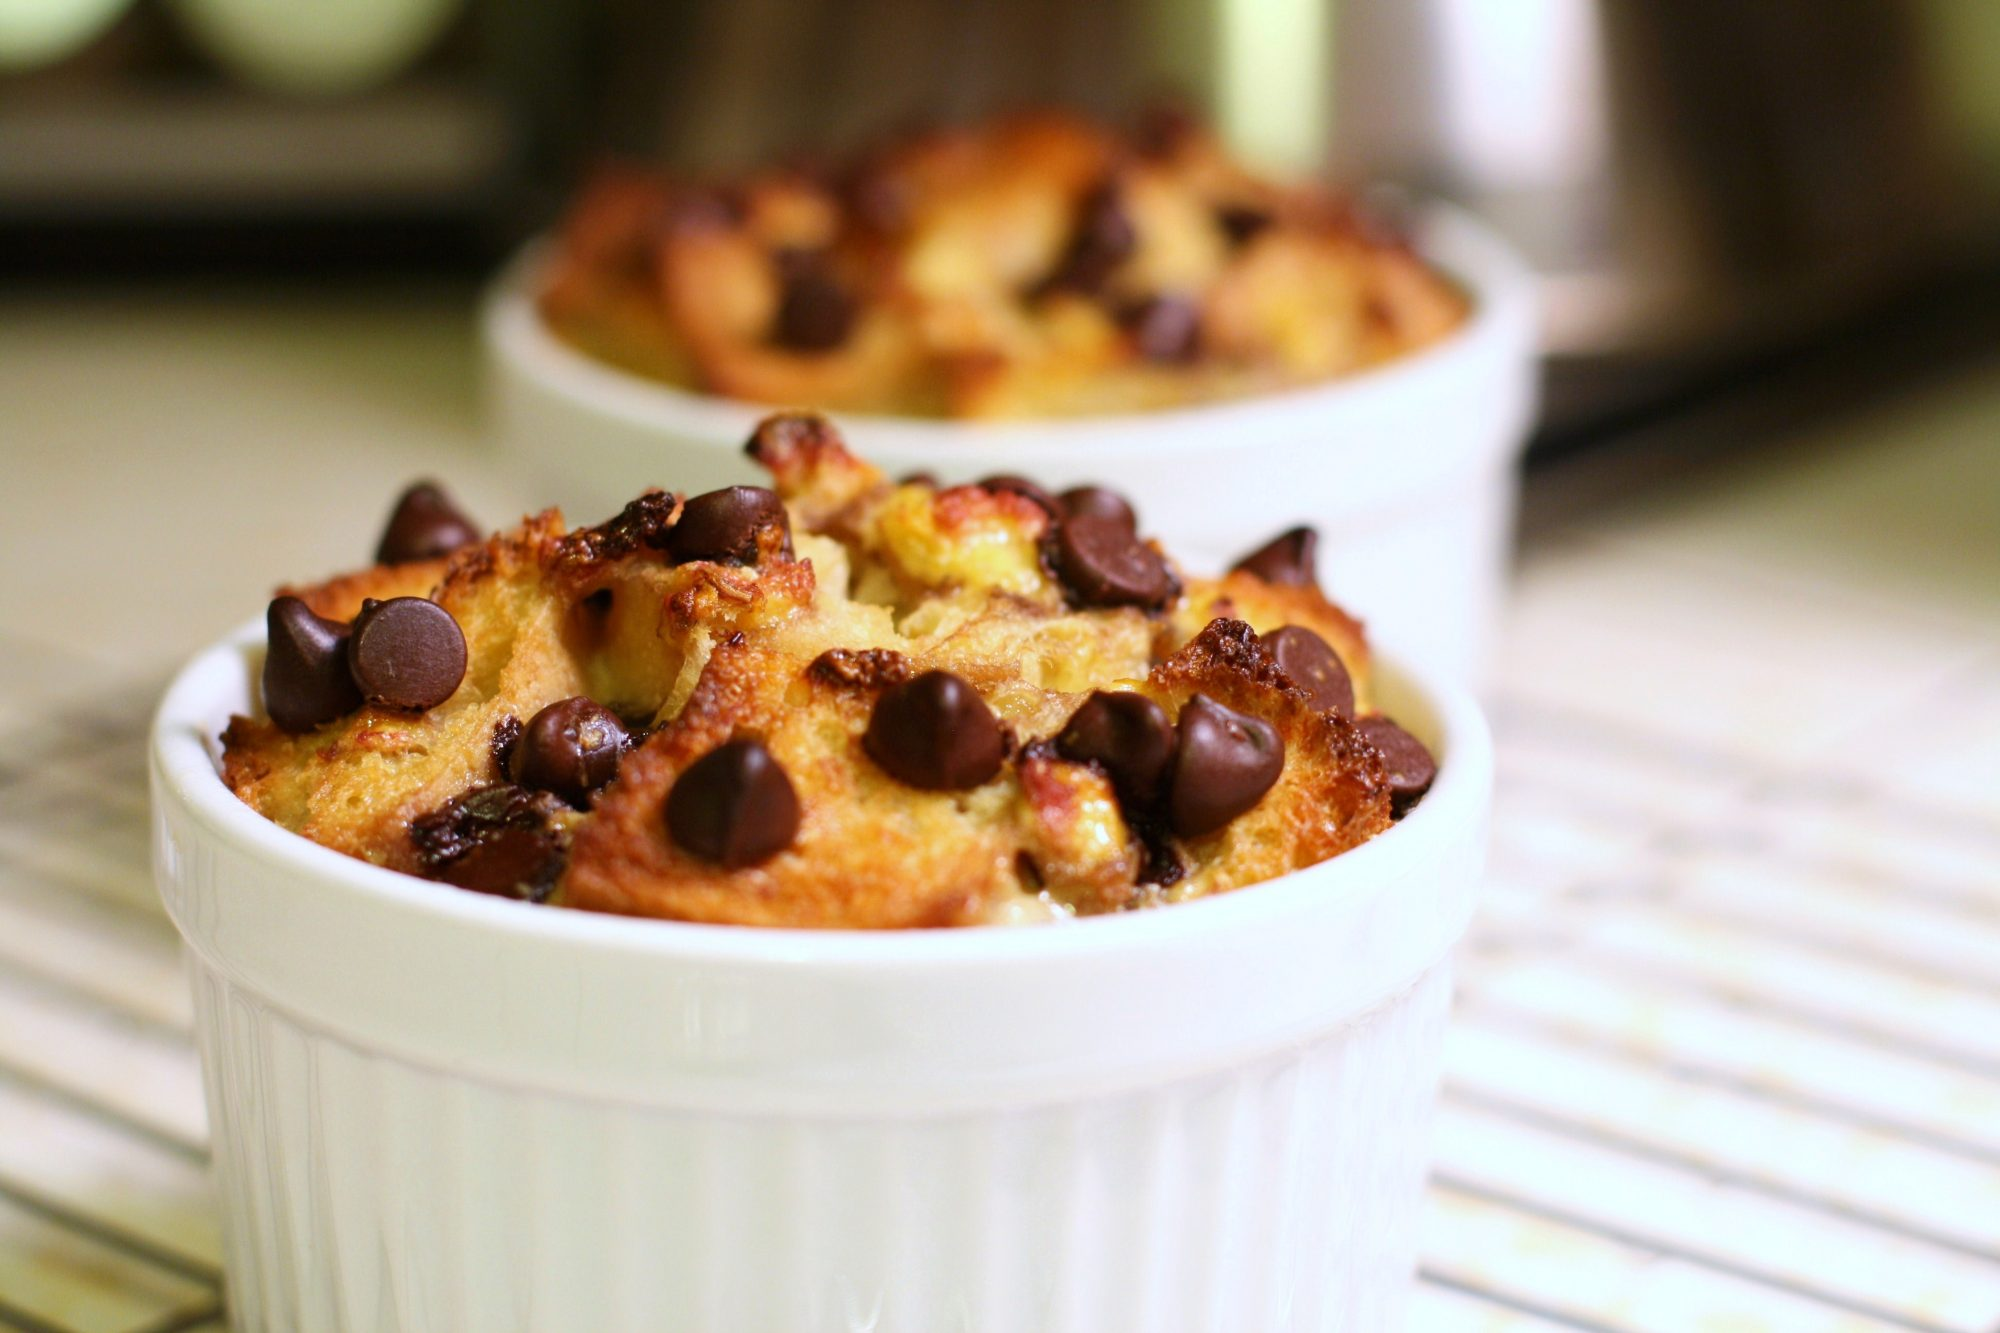 Chocolate Banana Bread Pudding Photo by TTV78